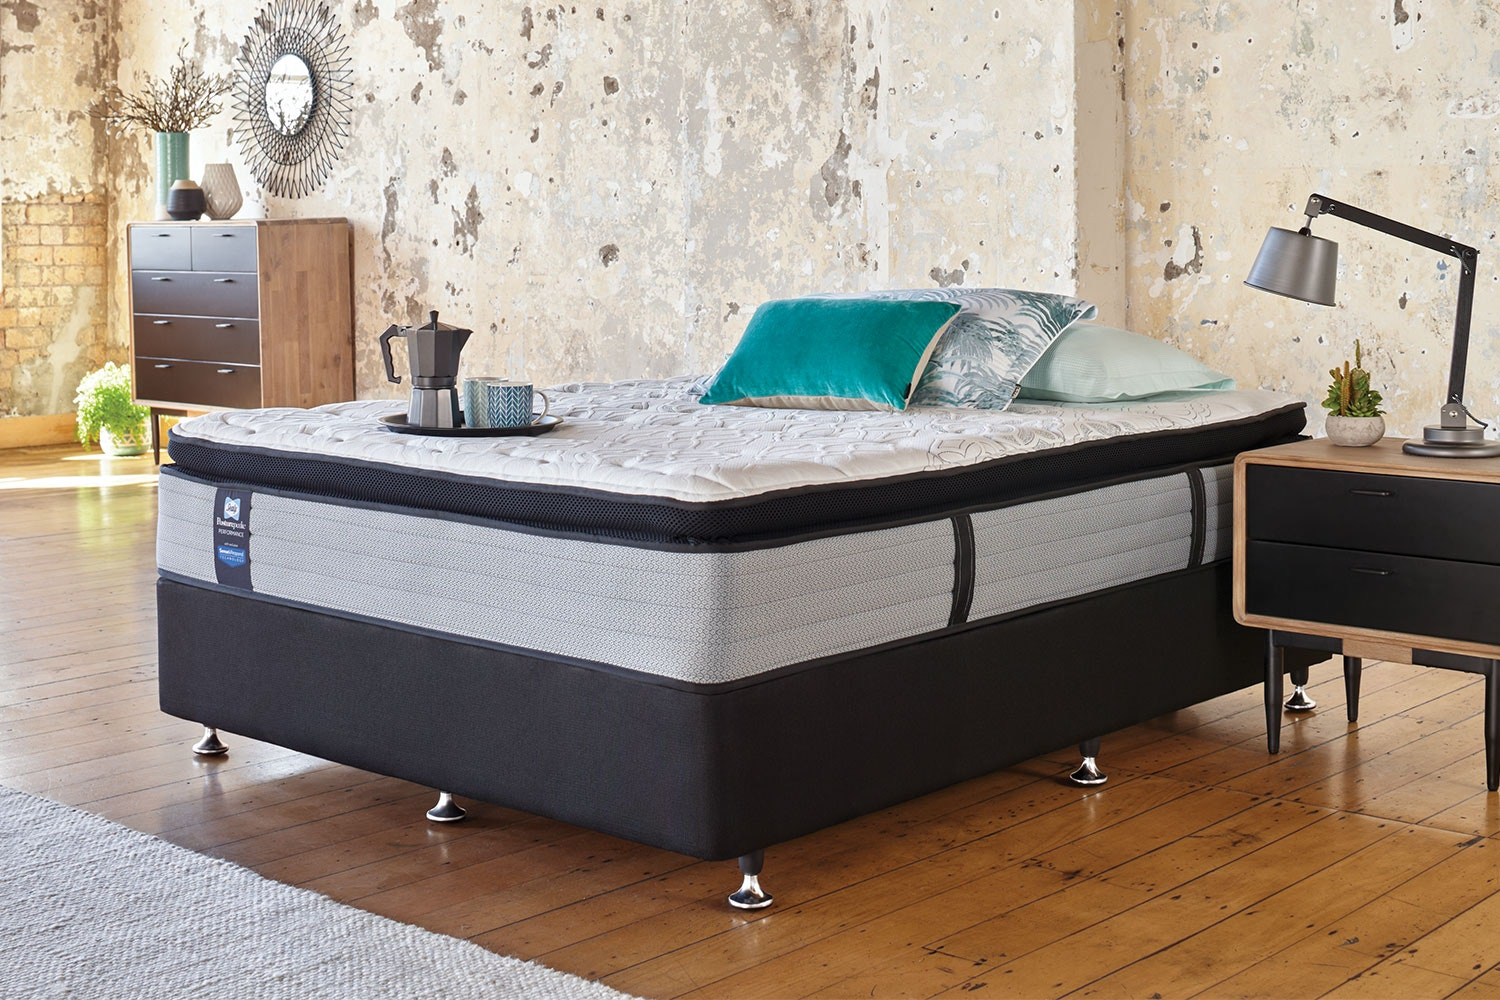 Mason Medium Queen Bed by Sealy Posturepedic